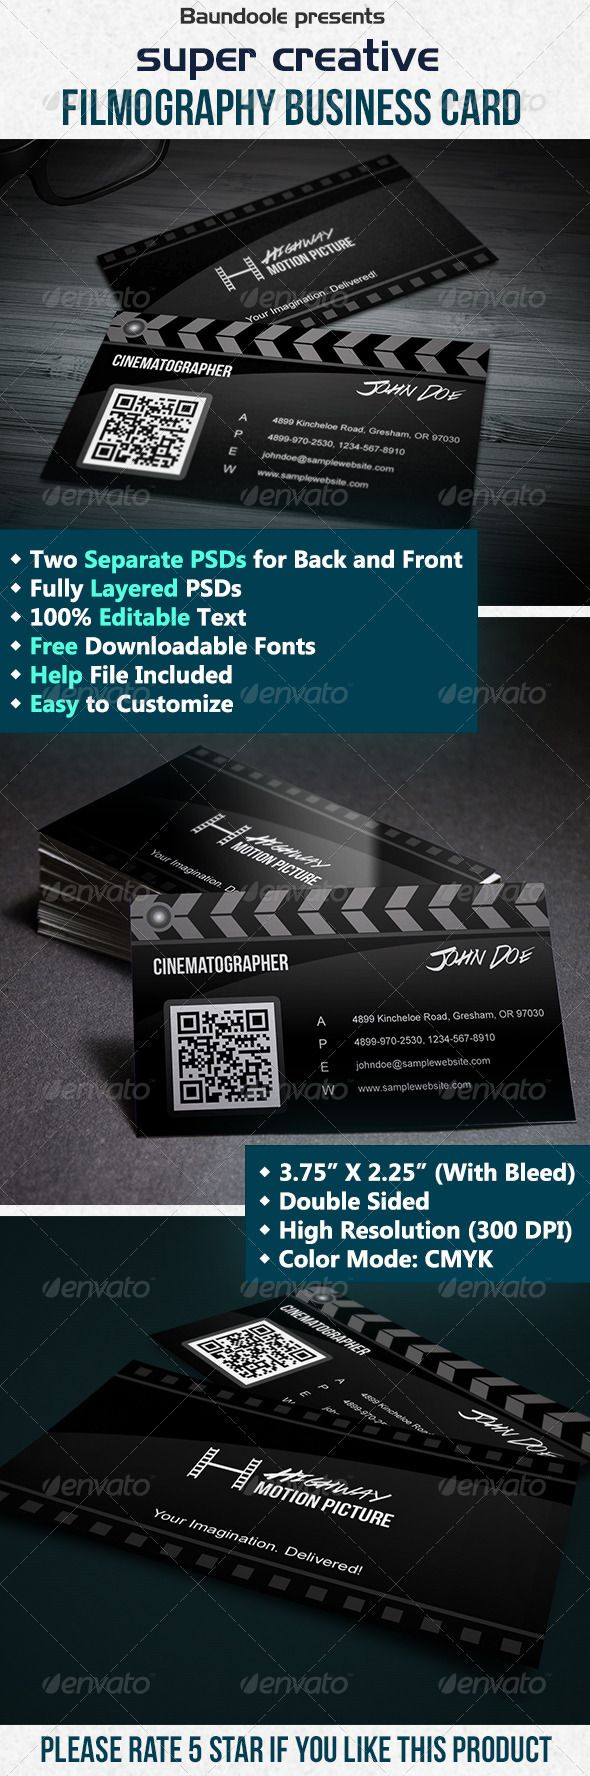 Super Creative Film Making Business Card | Film making, Business ...